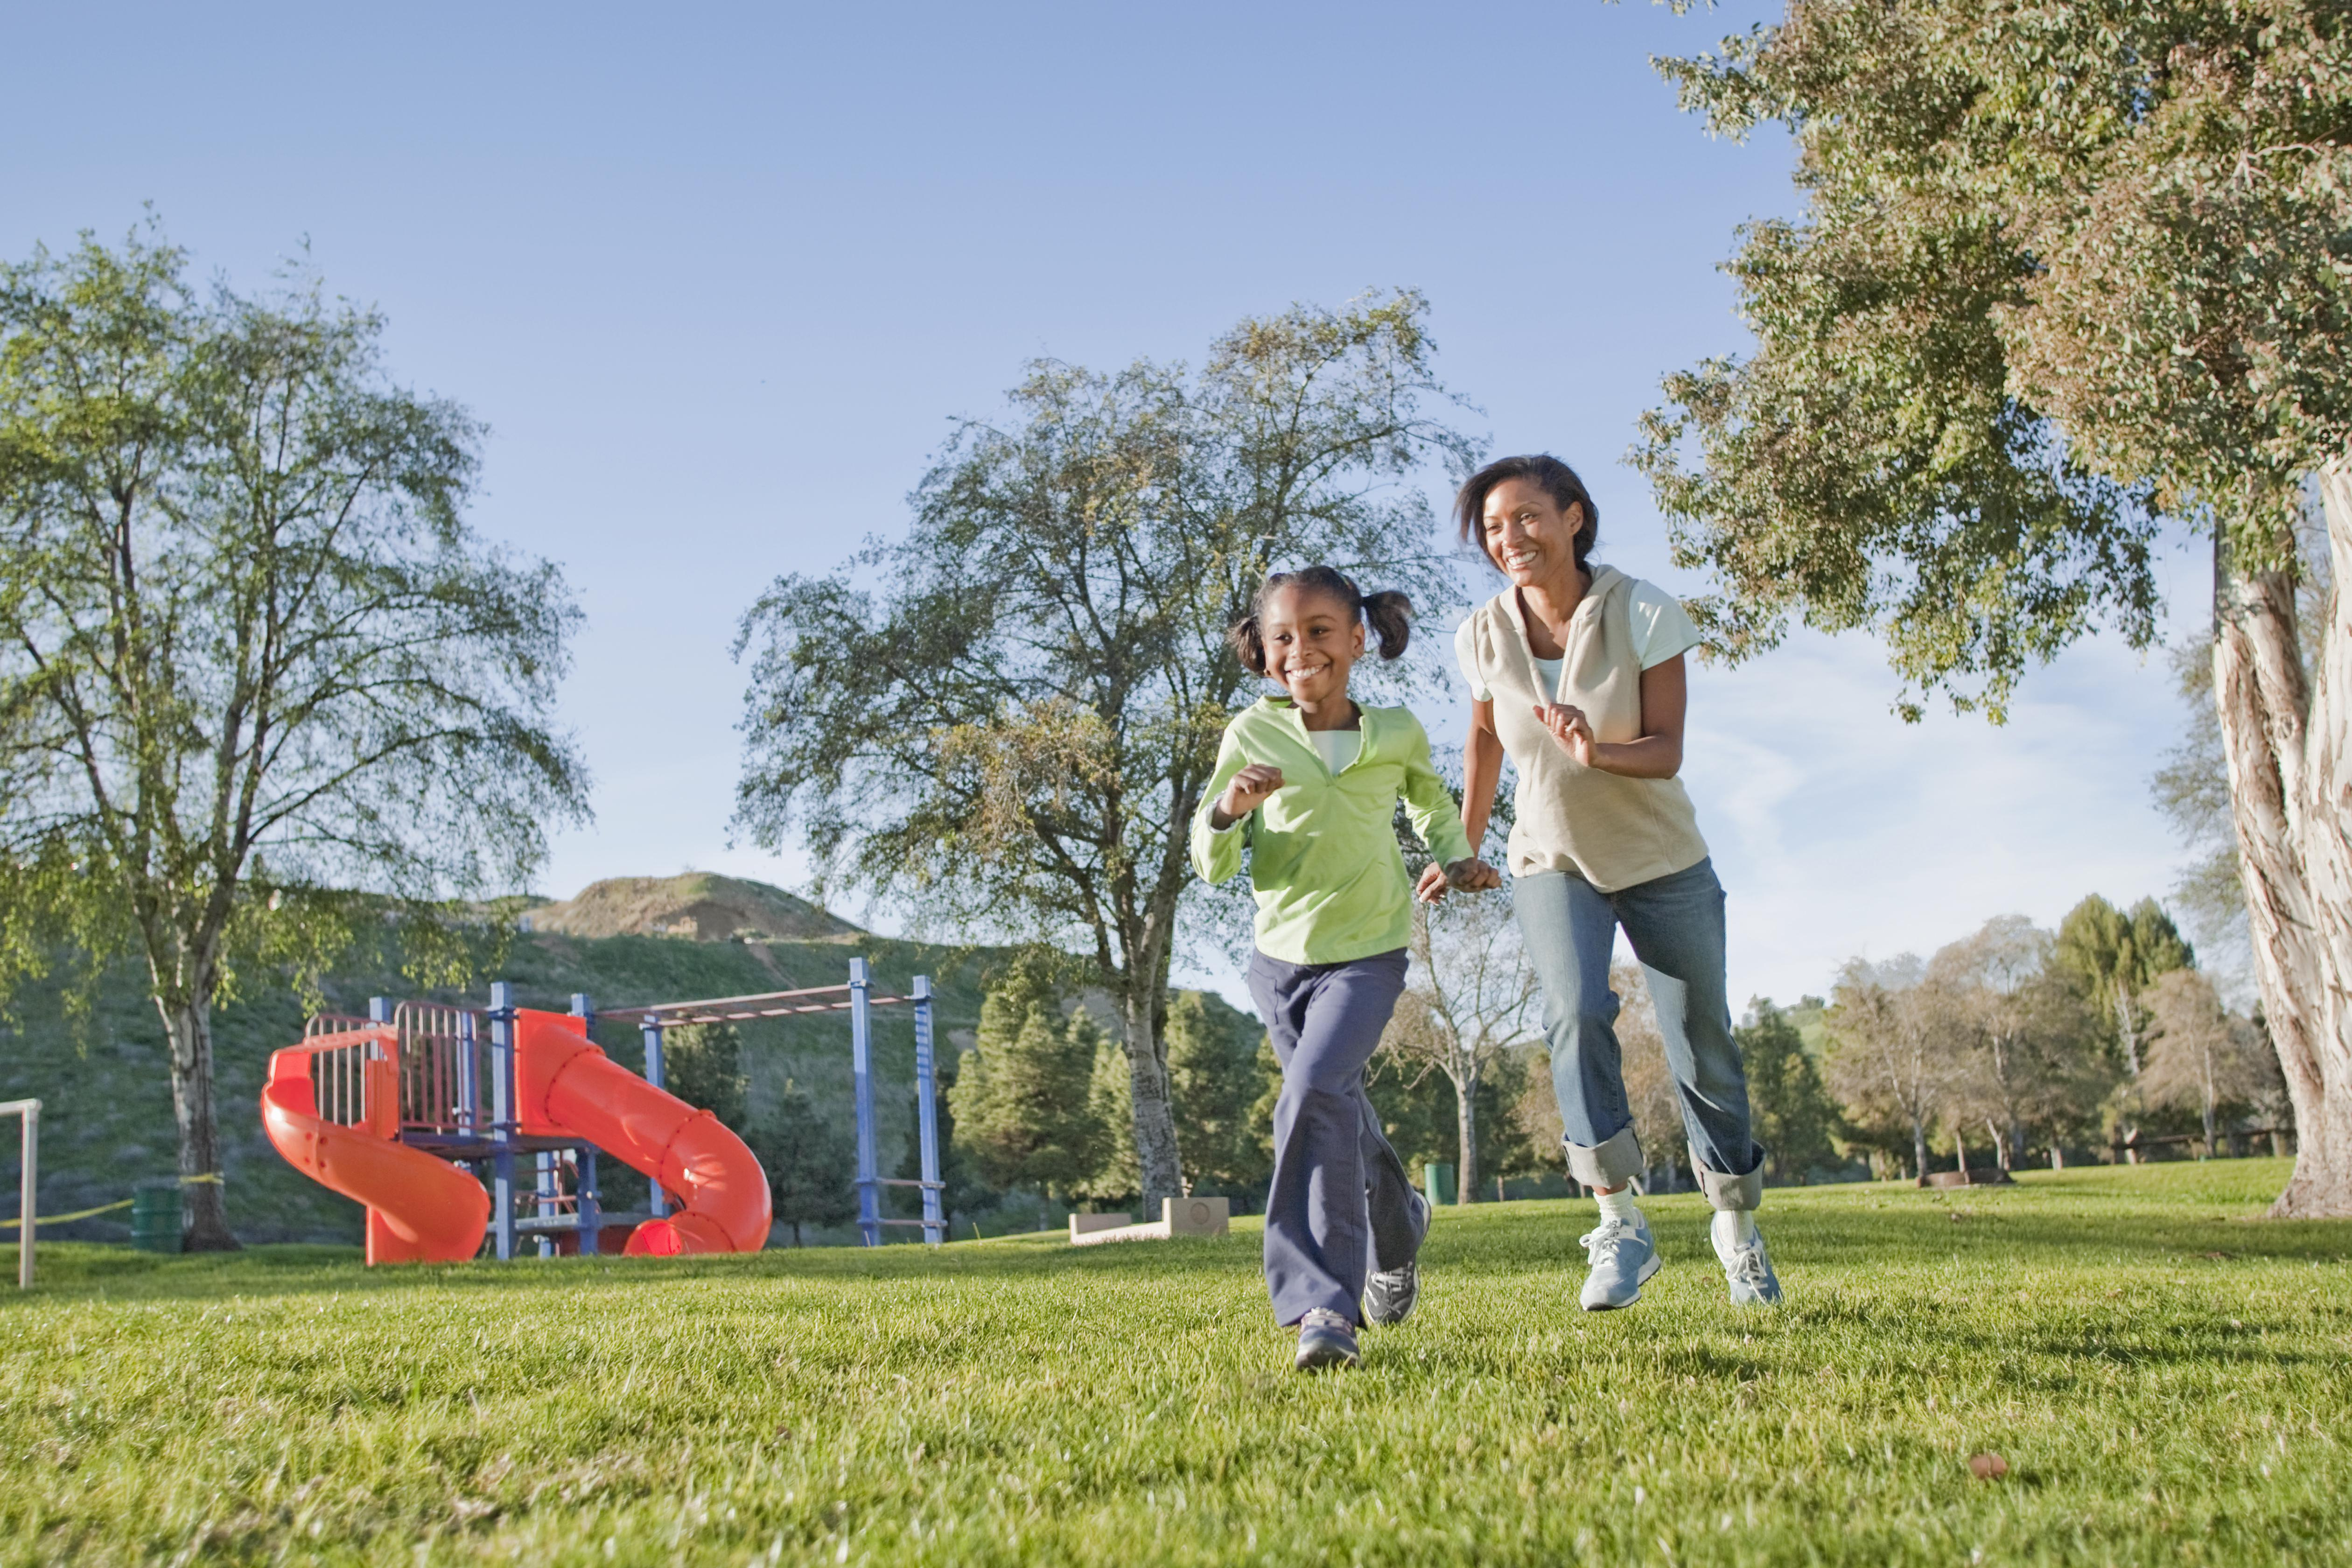 Mother and daughter running in a park